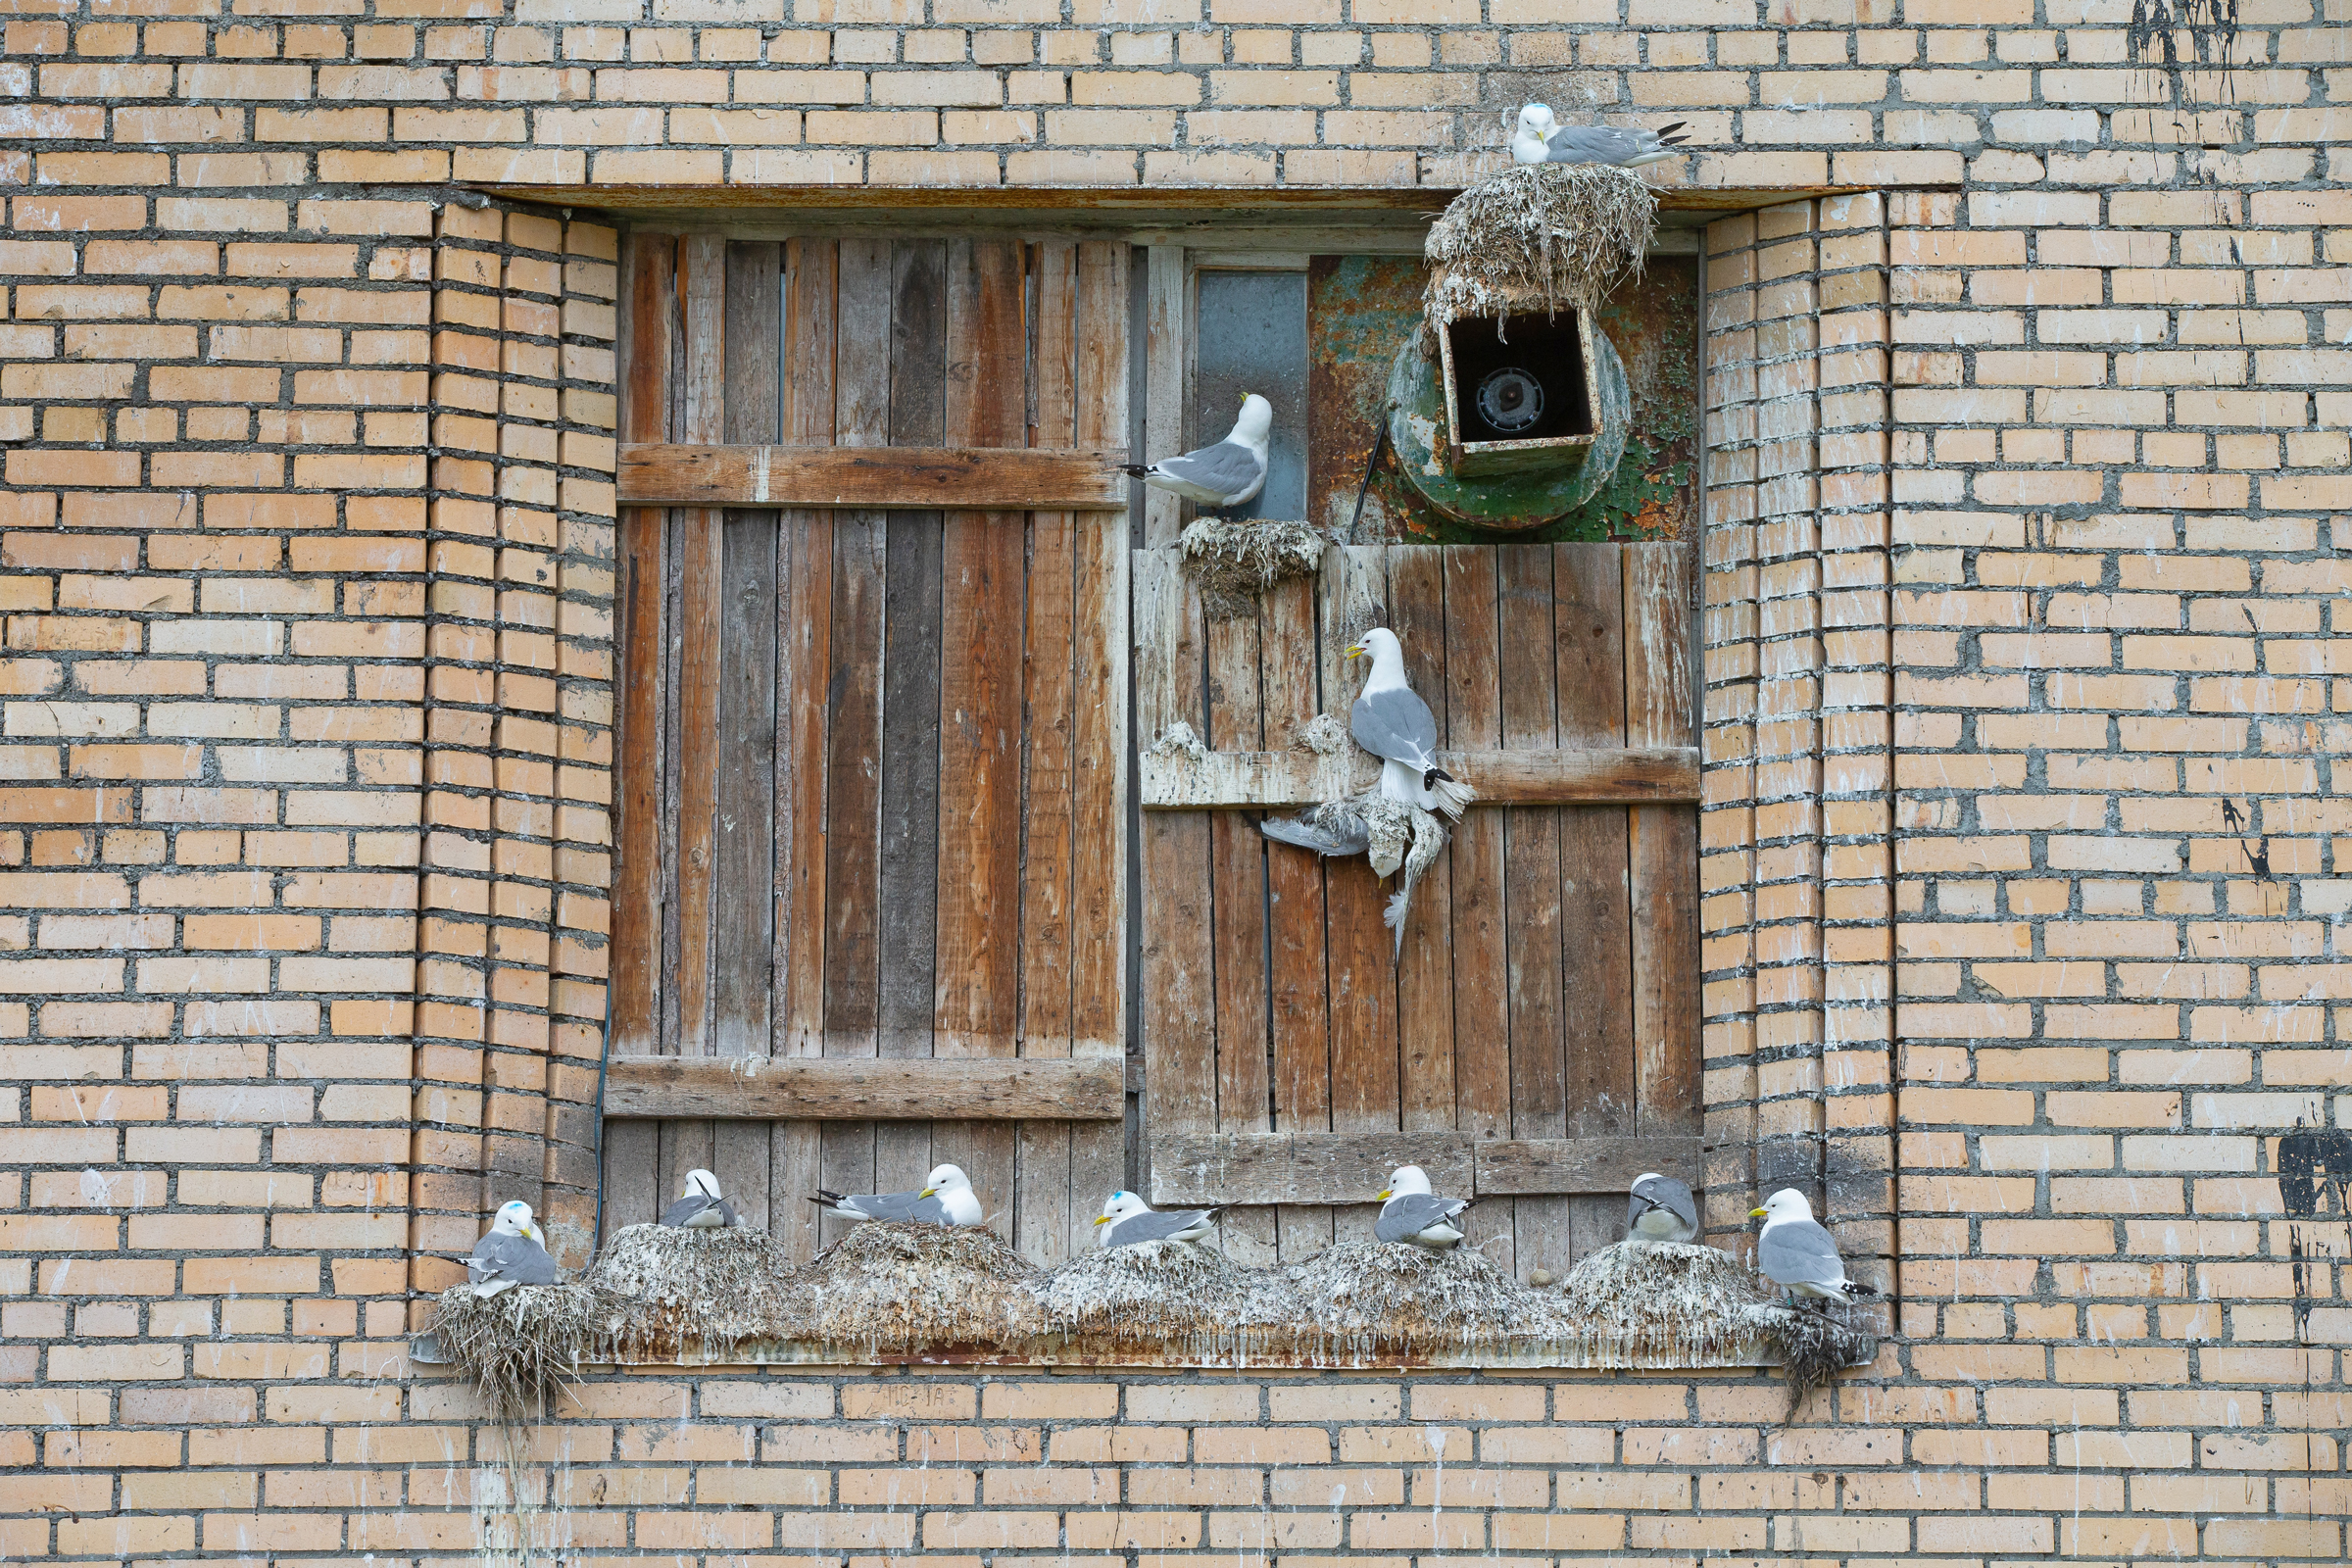 Kittiwakes on the workers' accommodation building (Mike Watson).